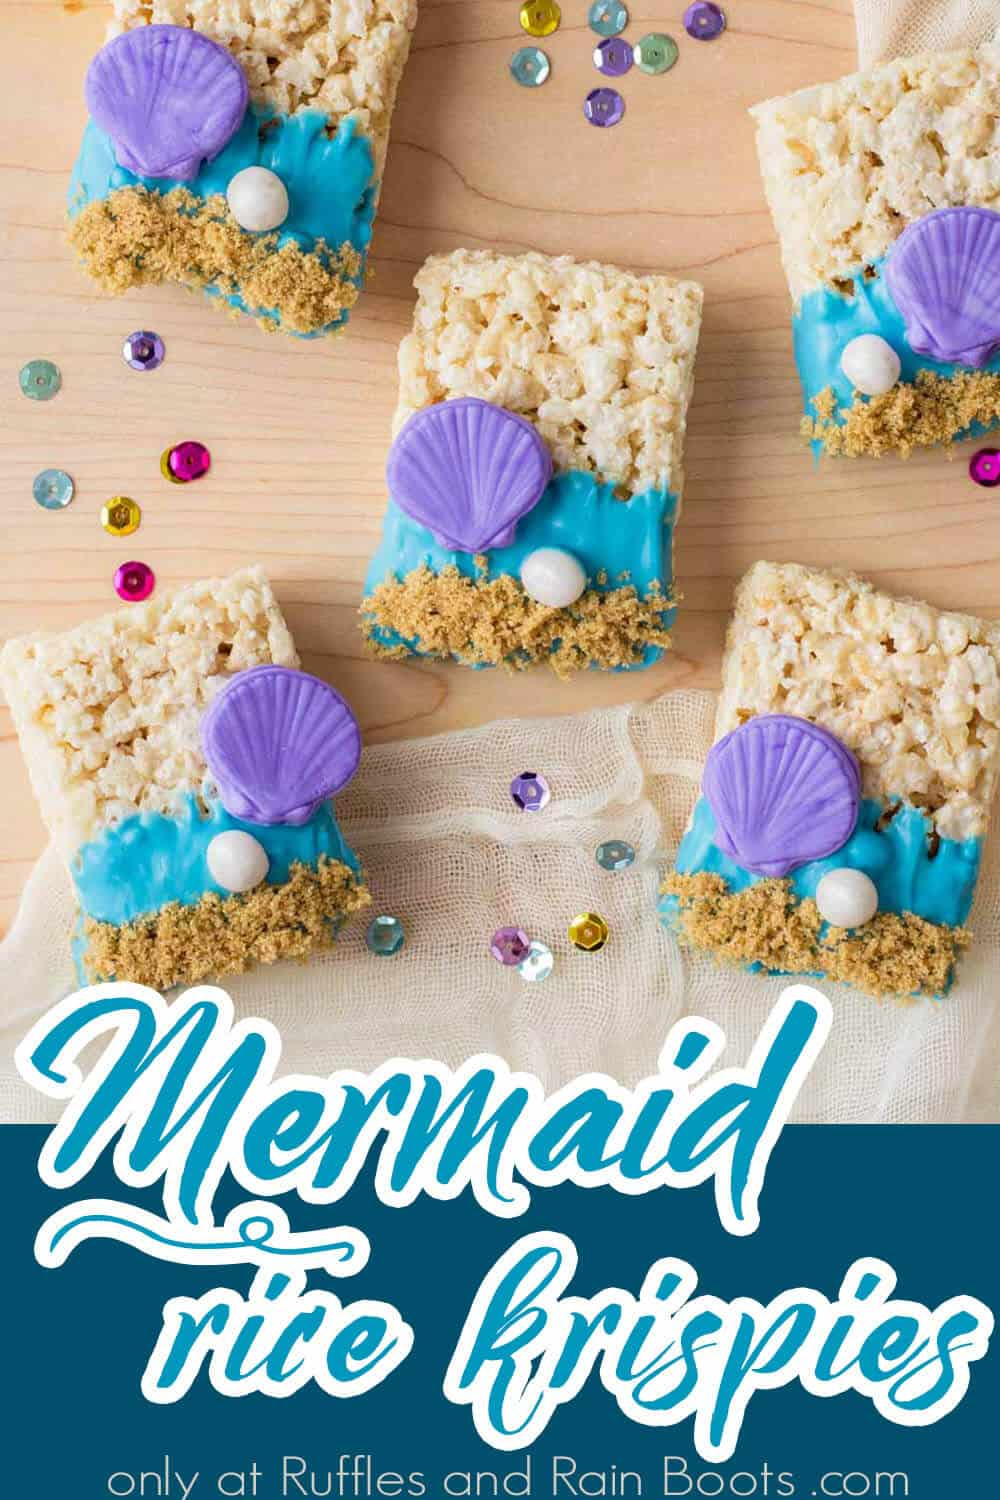 under sea rice krispies treats with text which reads mermaid rice krispies